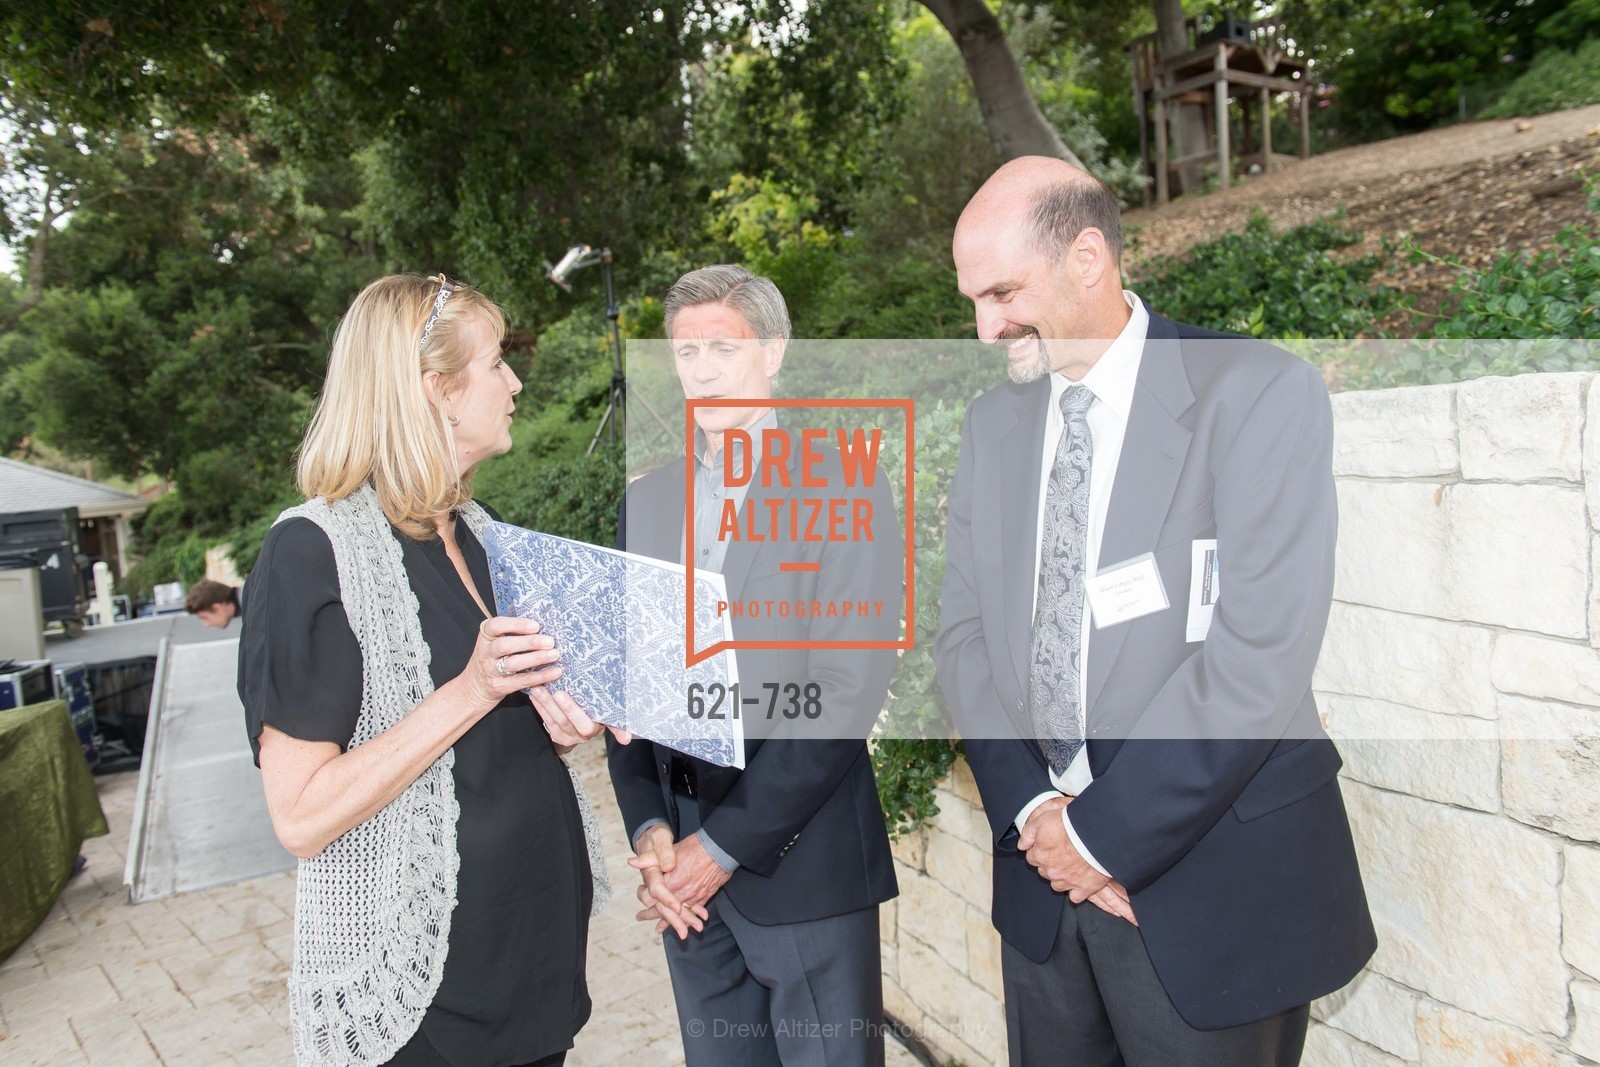 Frank Longo, Mark Eshoo, LymeAid 2015, US, May 17th, 2015,Drew Altizer, Drew Altizer Photography, full-service agency, private events, San Francisco photographer, photographer california